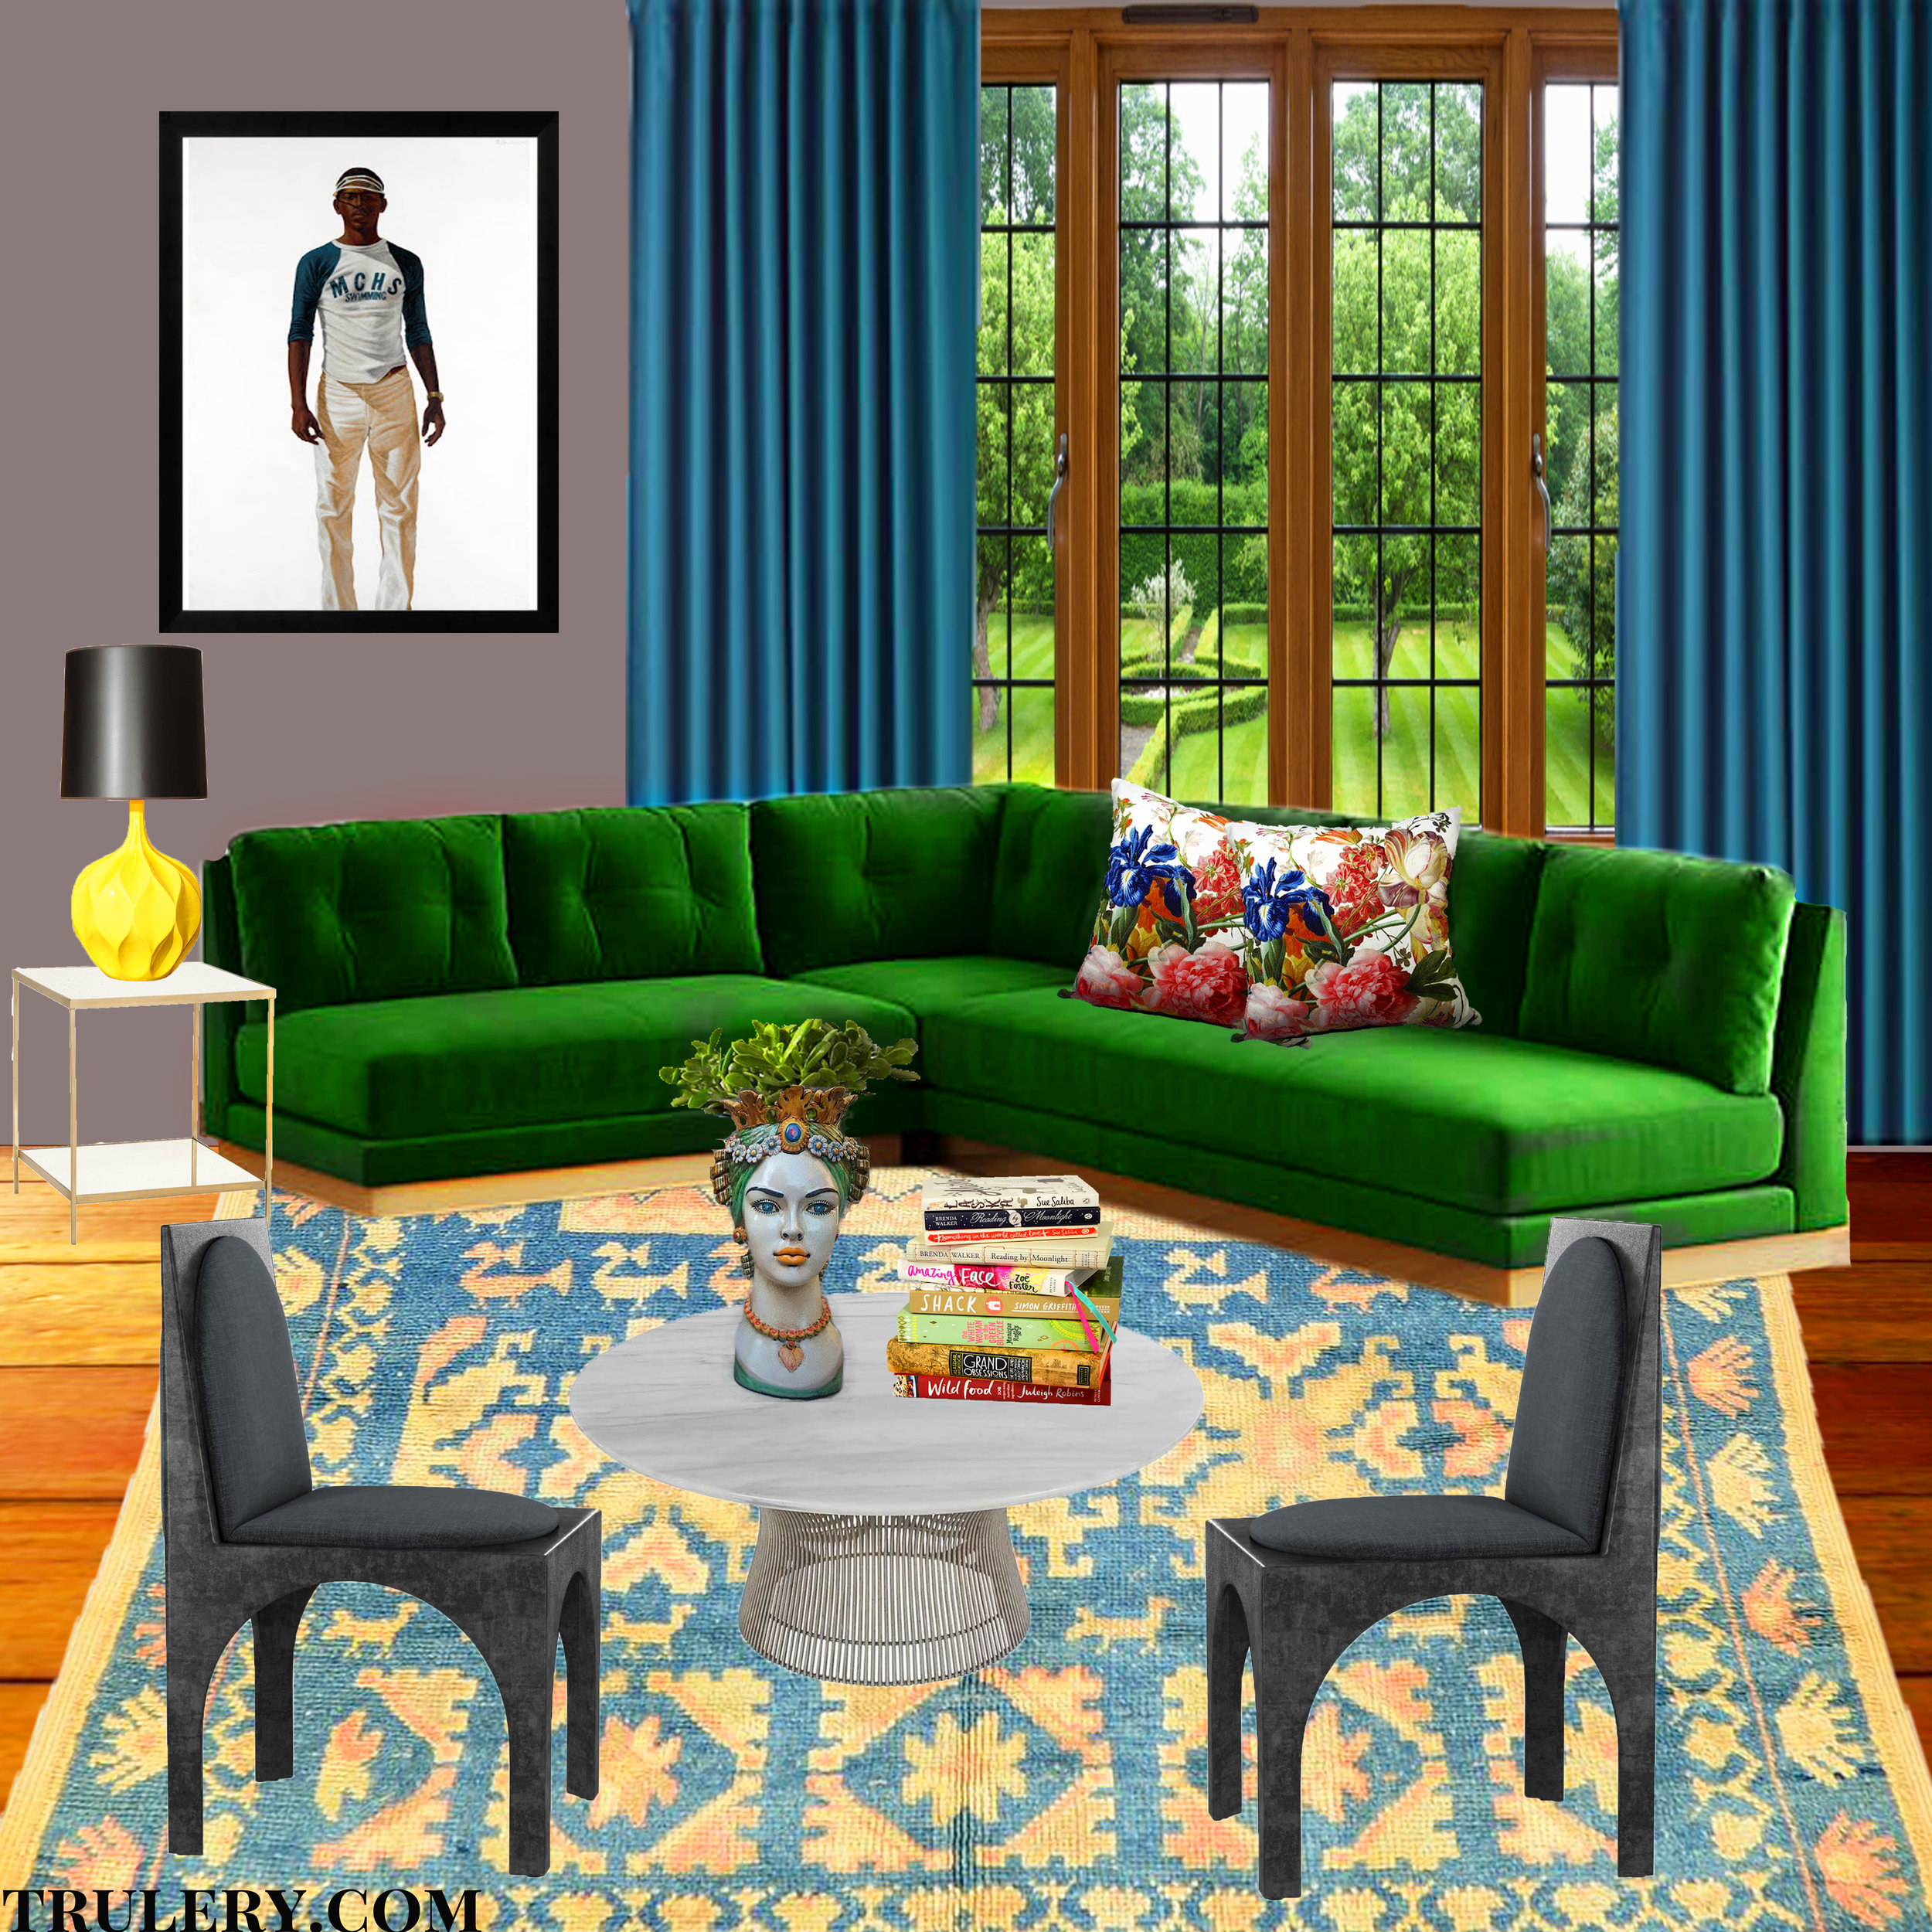 Pair green with blues and yellows for a more calming effect.